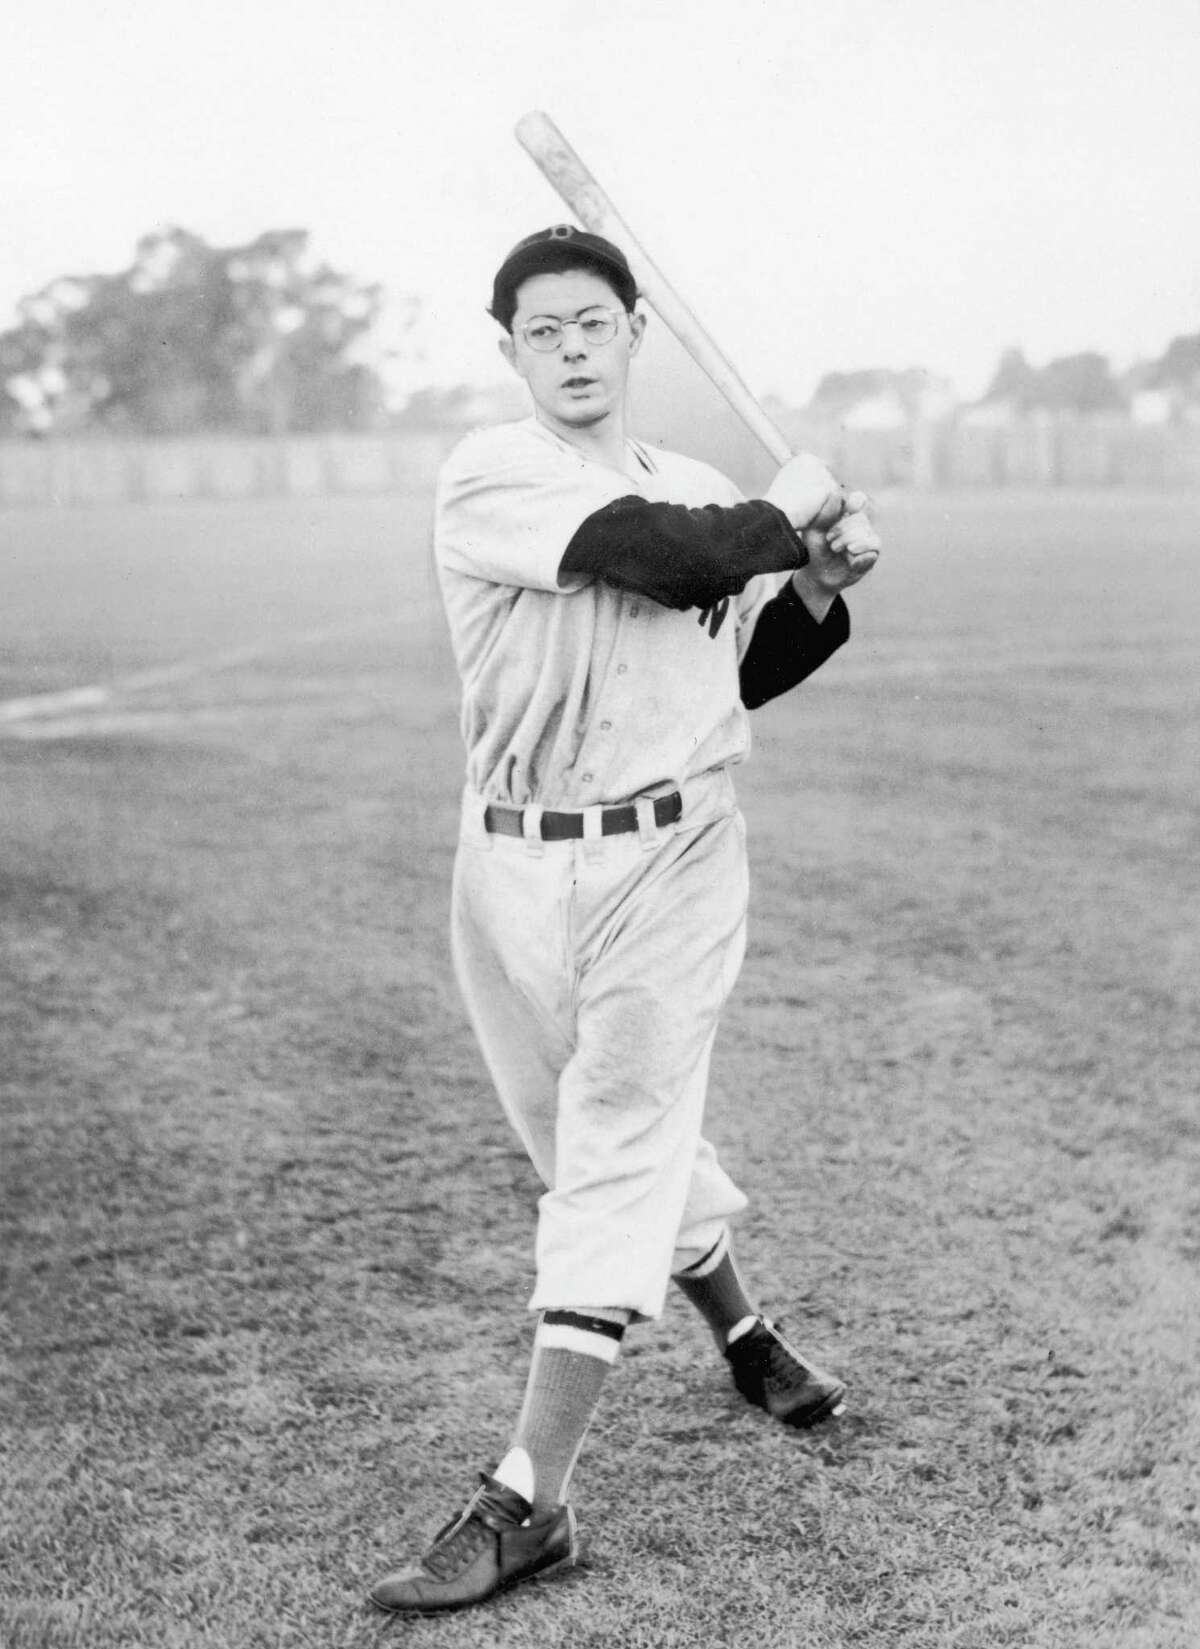 SARASOTA, FL - 1940: (FILE PHOTO) American baseball player Dominic DiMaggio, brother of Joe DiMaggio, practices batting in his uniform during Spring training with the Boston Red Sox in 1940 in Sarasota, Florida. DiMaggio, 92, died May 8, 2009 in his home in Massachusetts. (Photo by APA/Getty Images)